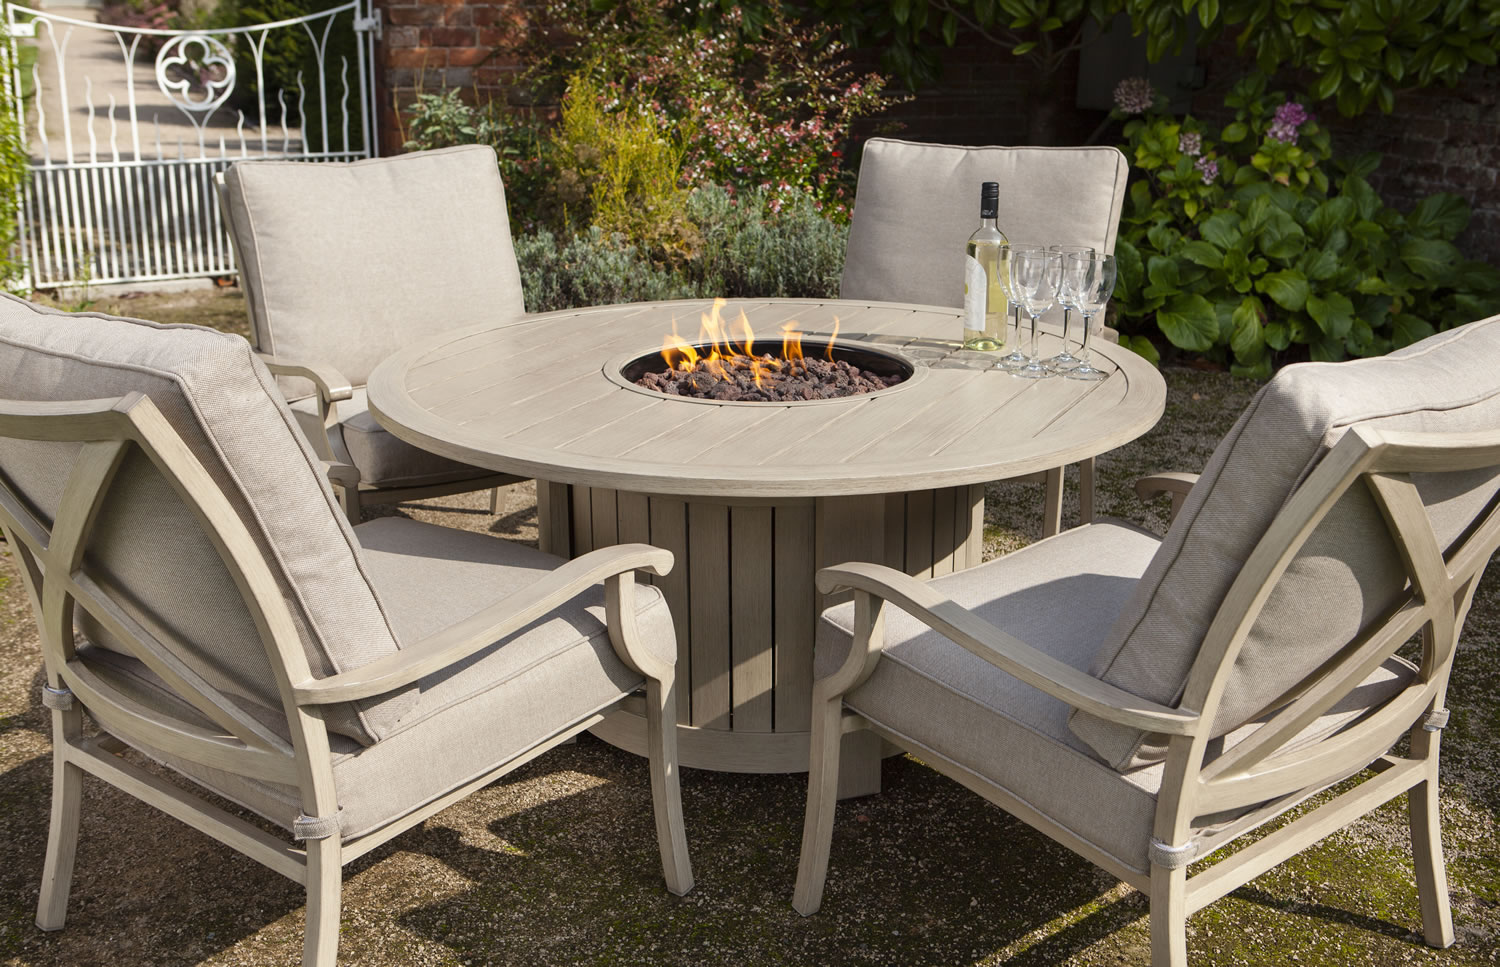 Portland Round 4 Seater Lounge Set With Fire Pit 1 At Garden4less UK